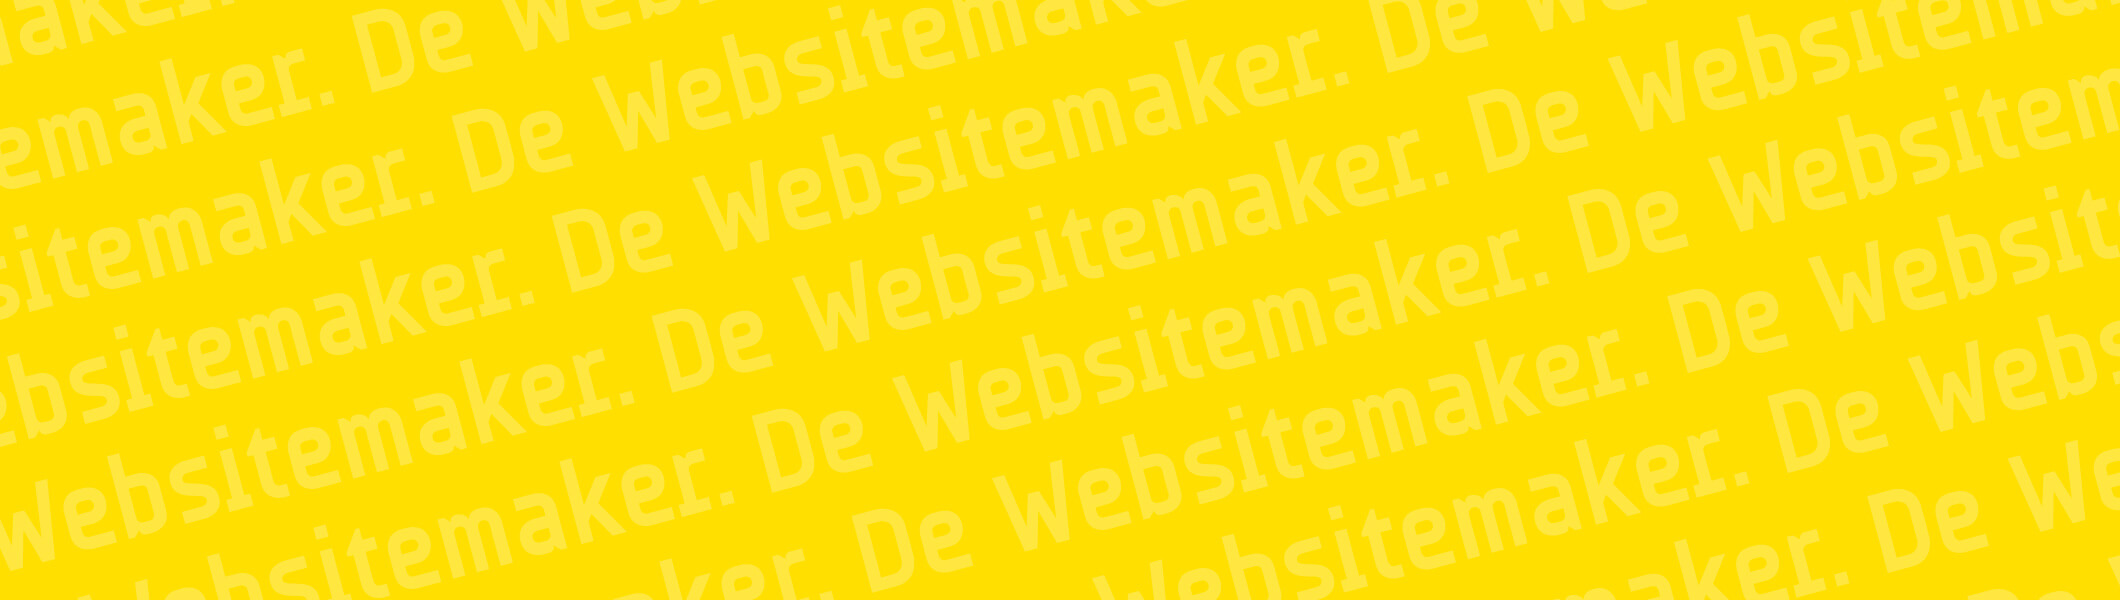 De Websitemaker